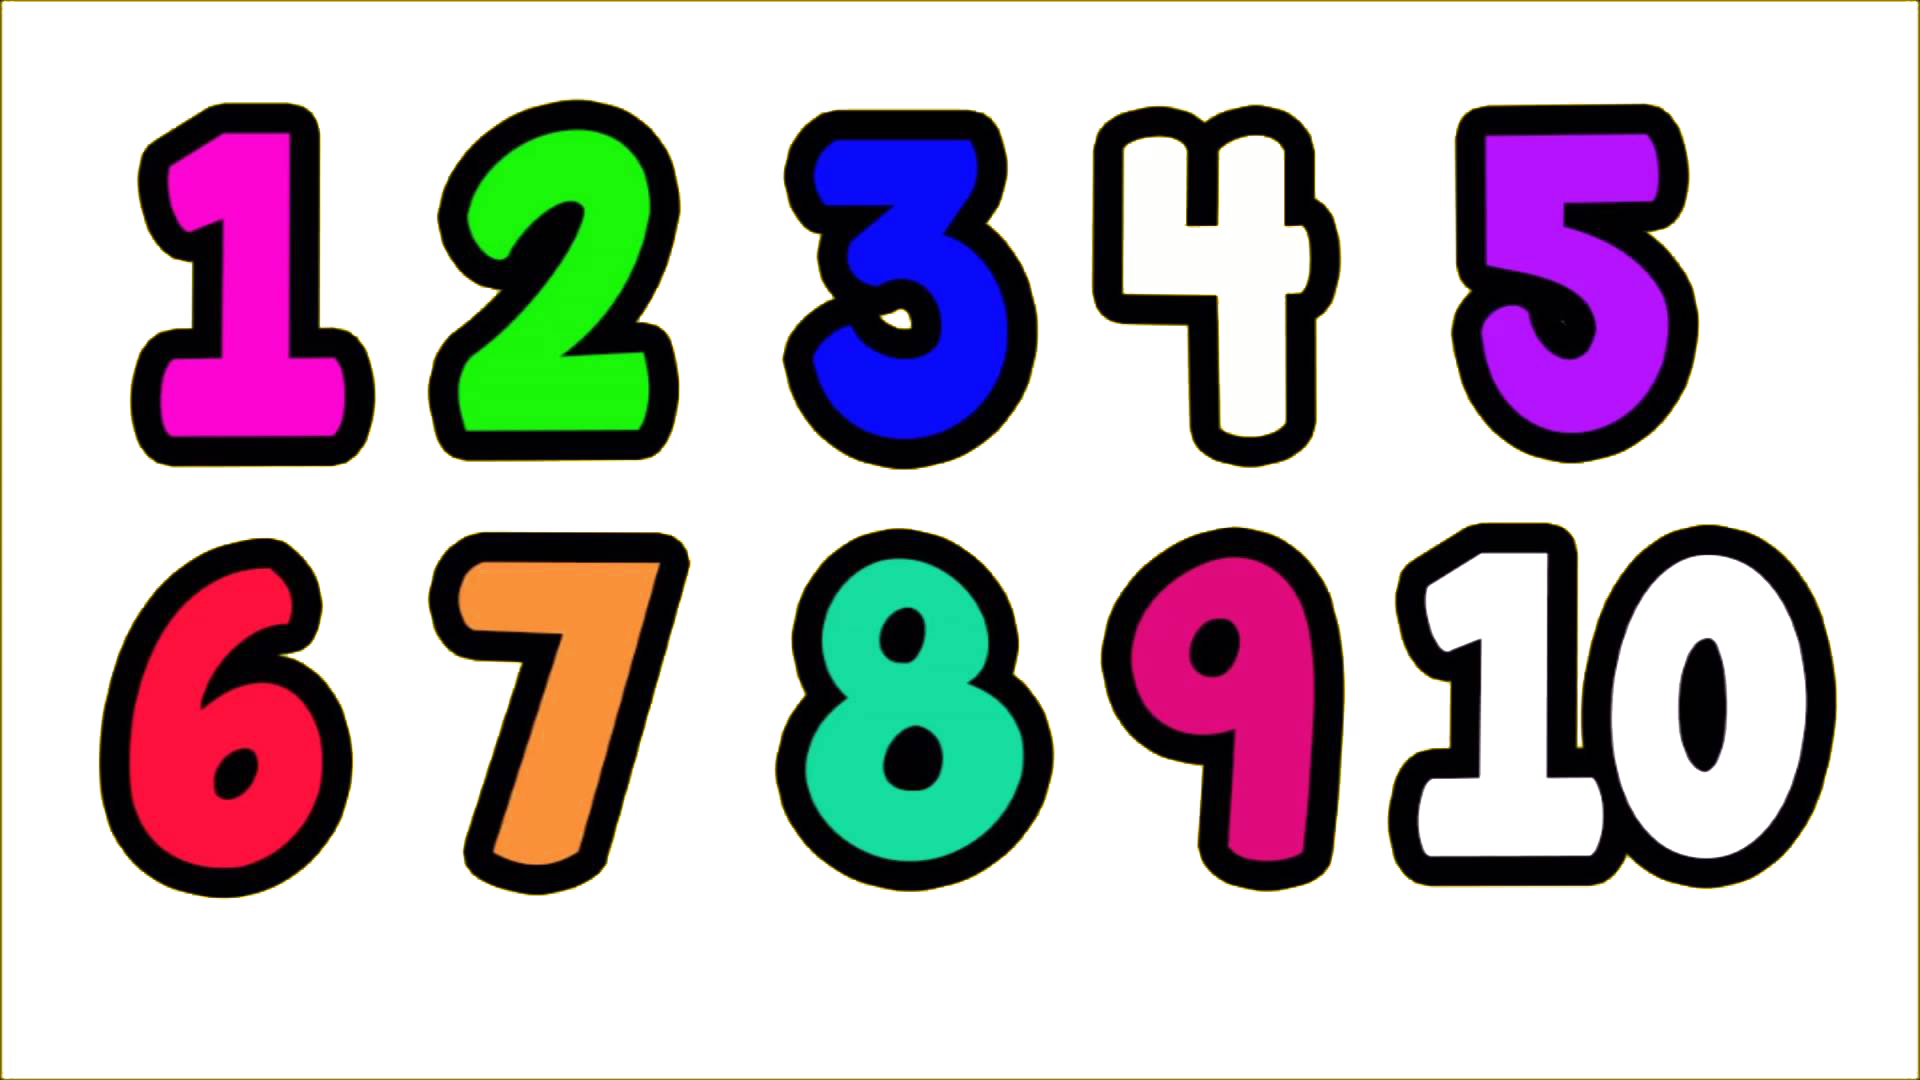 Transparent numbers clipart black and white library 1 to 10 Numbers PNG Transparent Images   PNG All black and white library